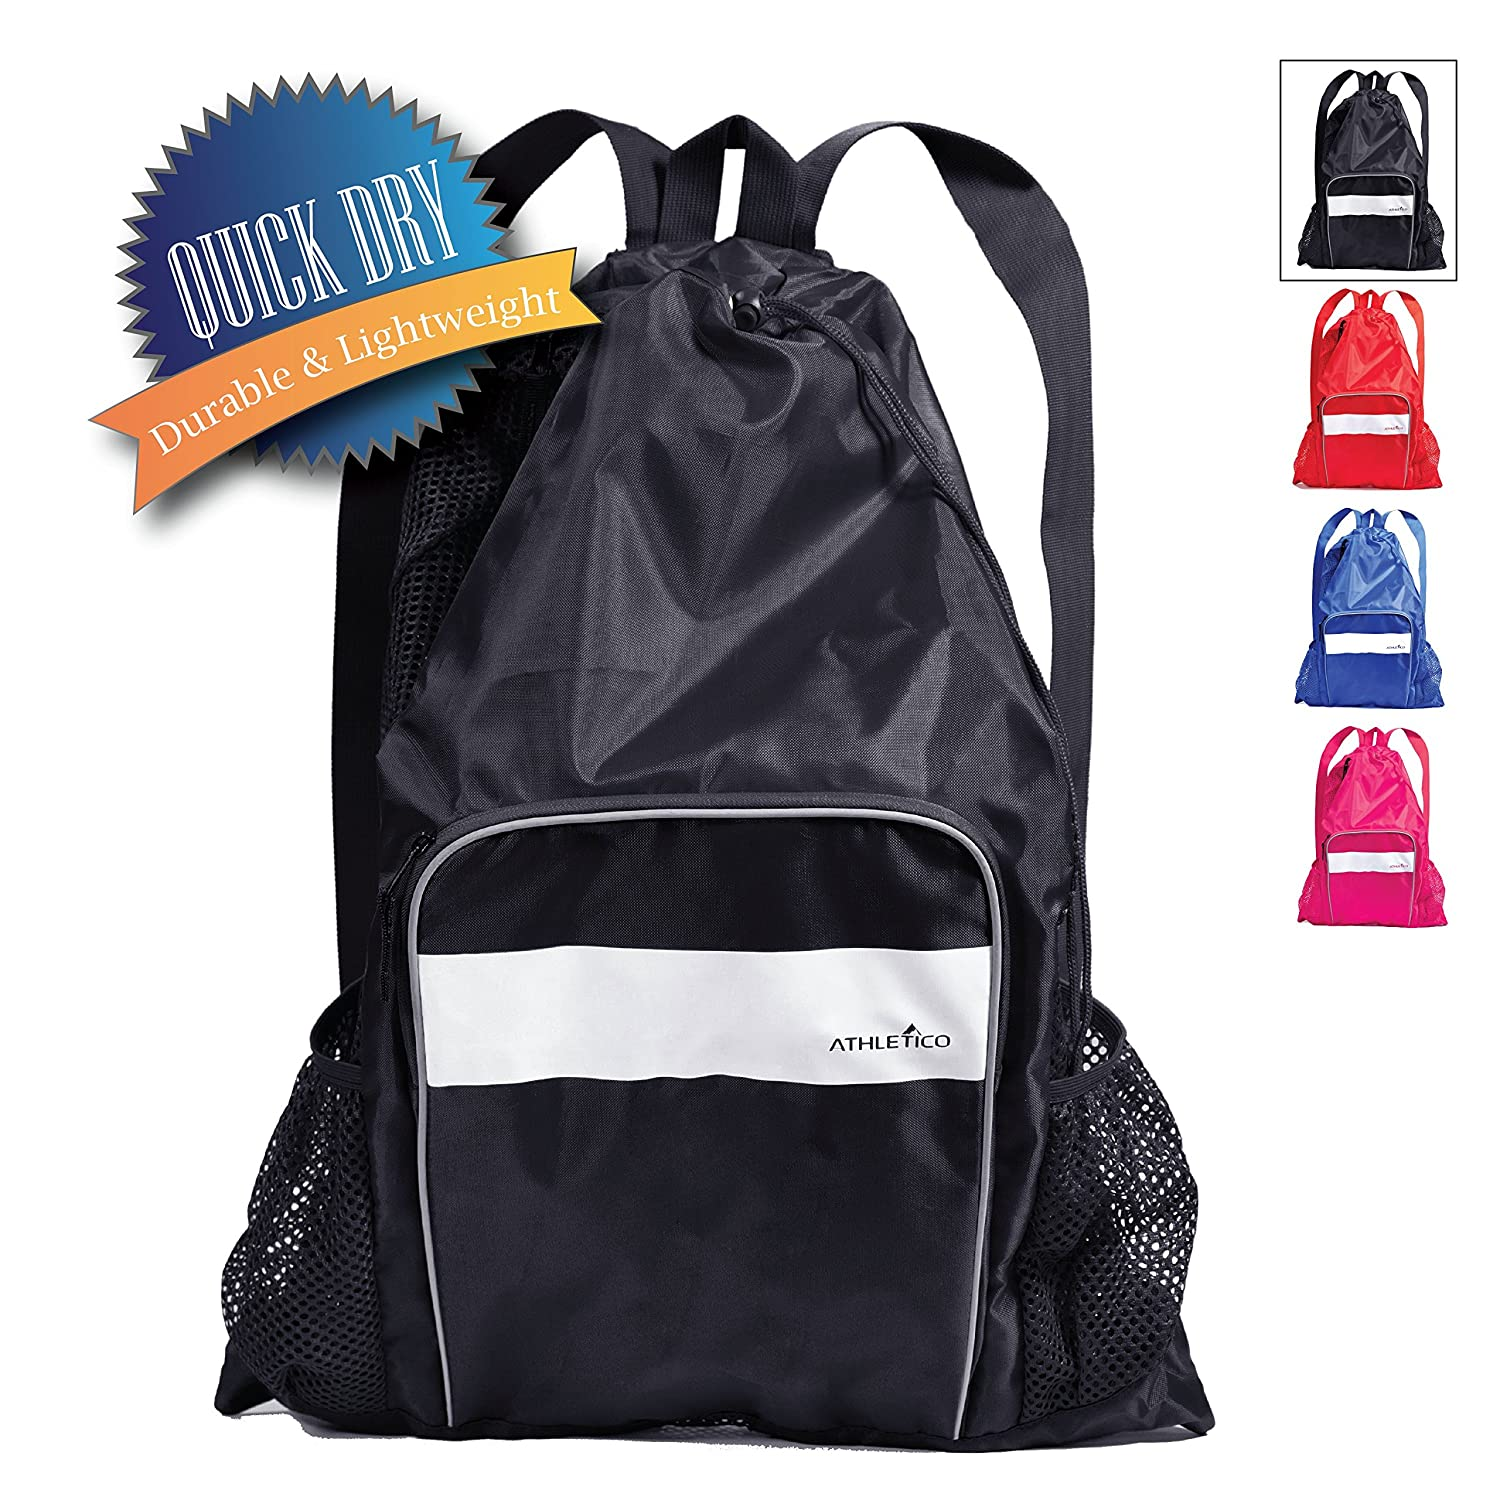 Athletico Mesh Swim Bag Mesh Pool Bag with Wet Dry Compartments for Swimming The Beach Camping and More